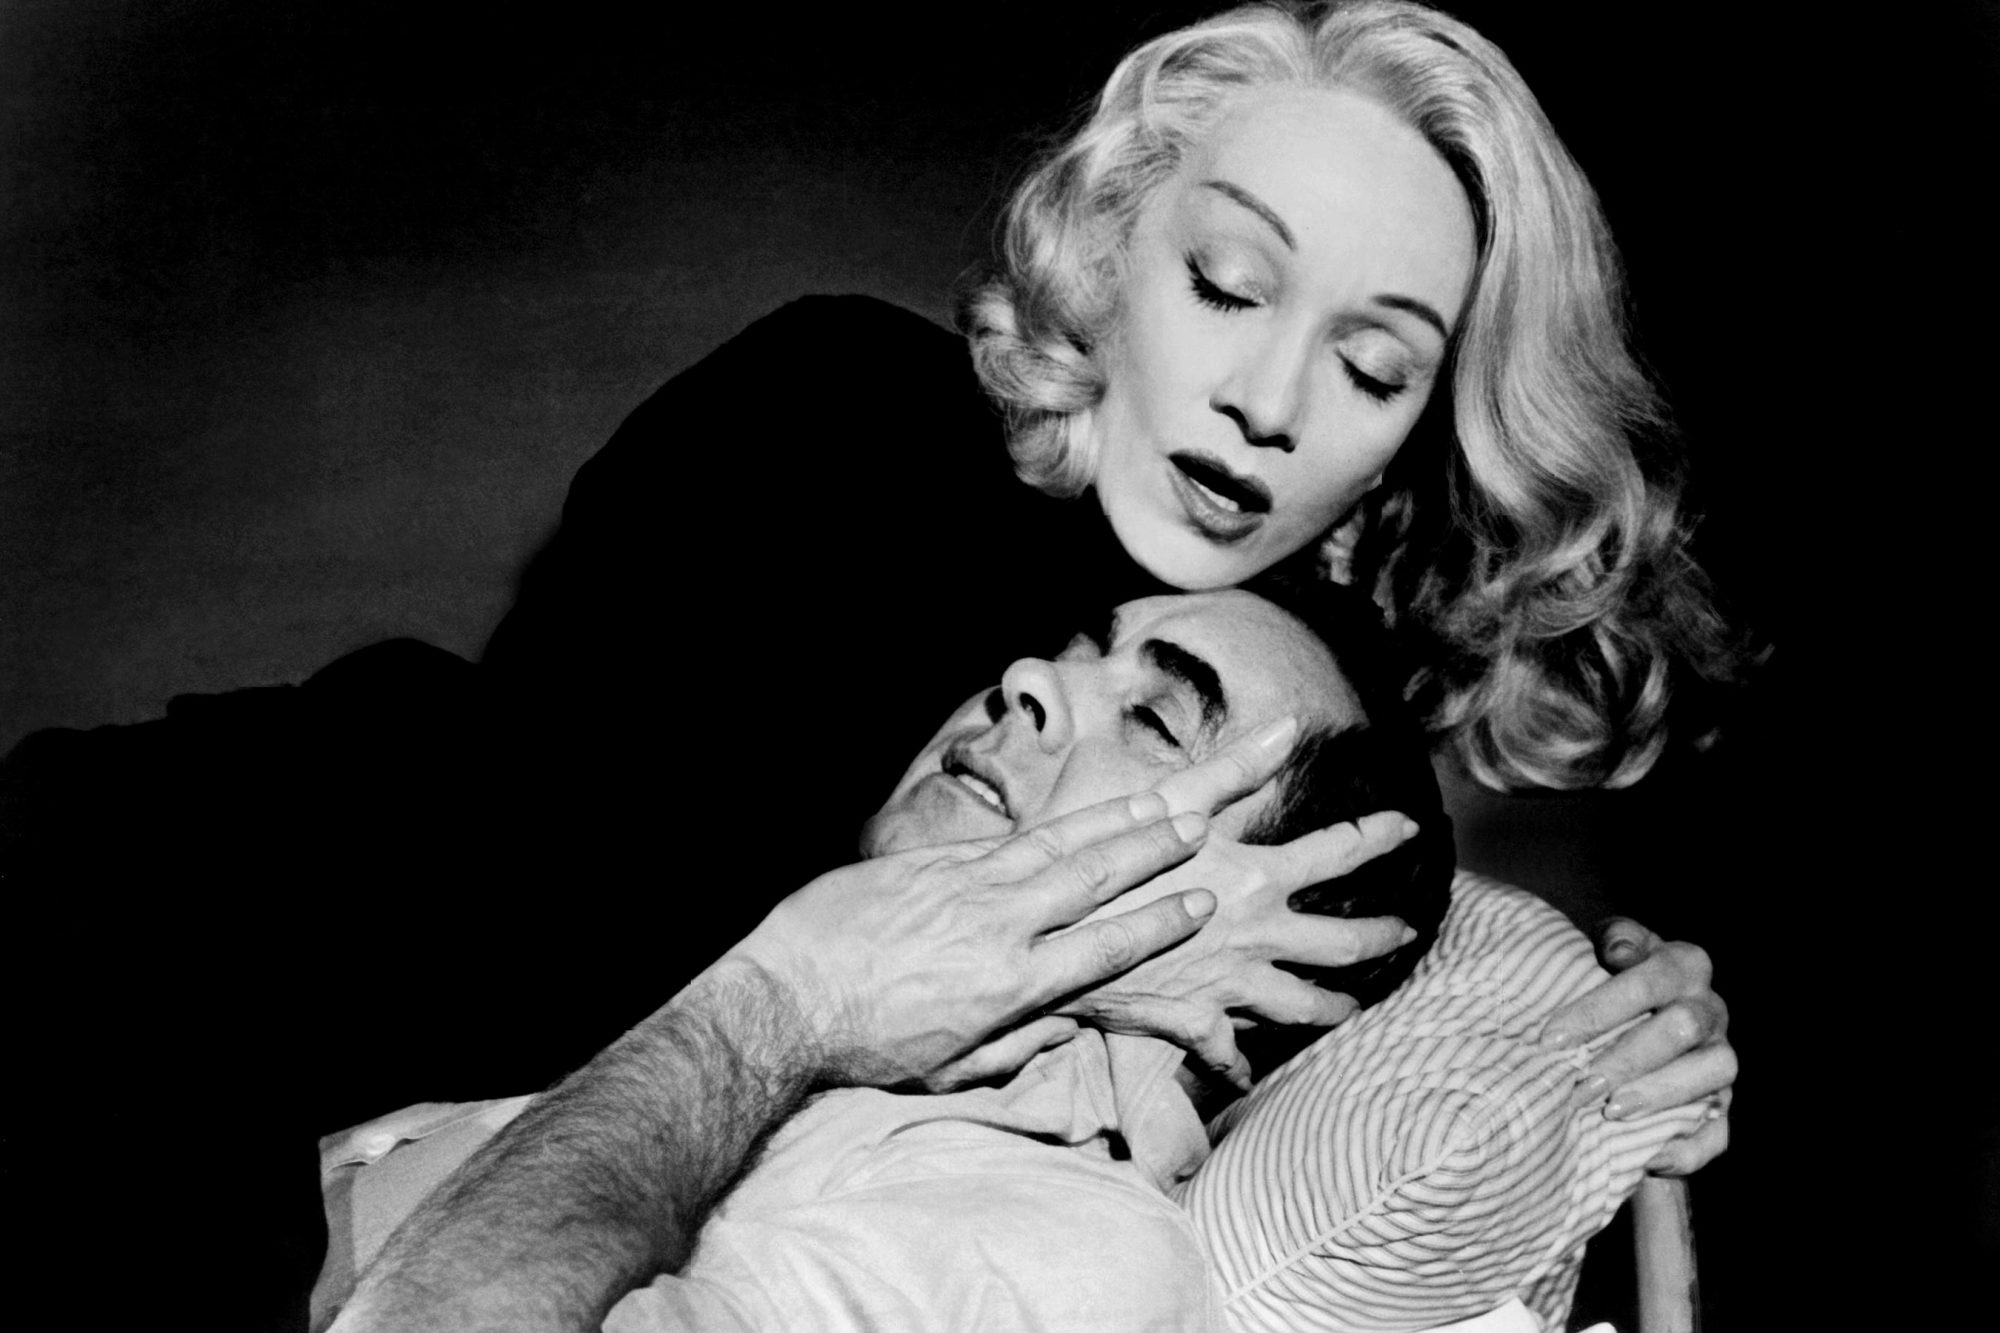 WITNESS FOR THE PROSECUTION, from top, Marlene Dietrich, Tyrone Power, 1957